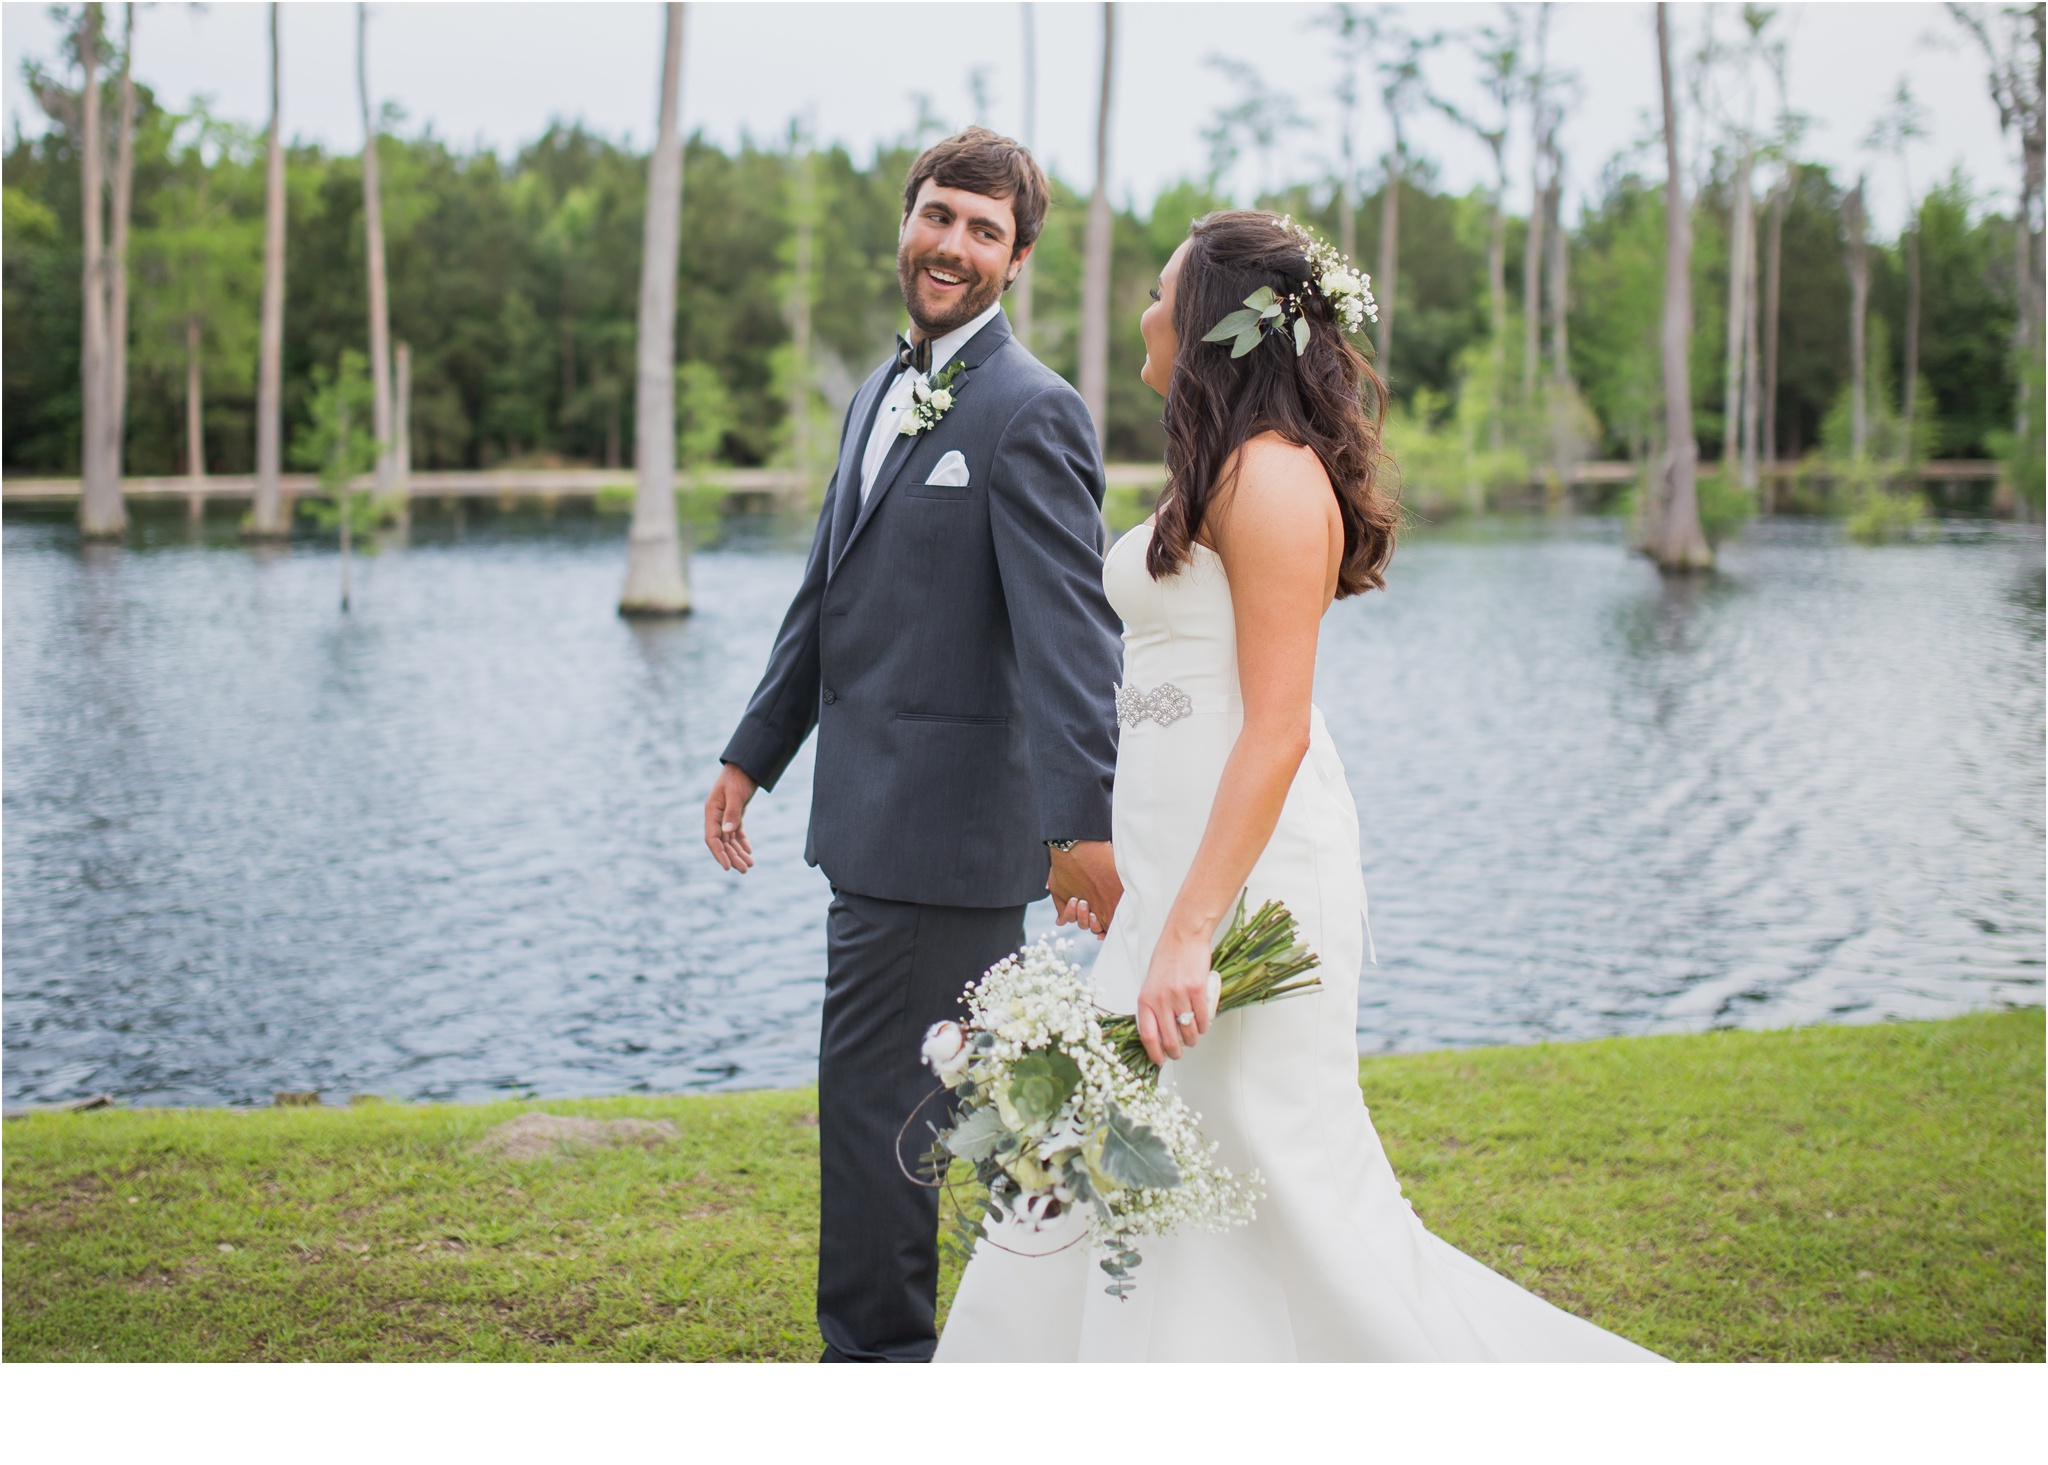 Rainey_Gregg_Photography_St._Simons_Island_Georgia_California_Wedding_Portrait_Photography_1007.jpg